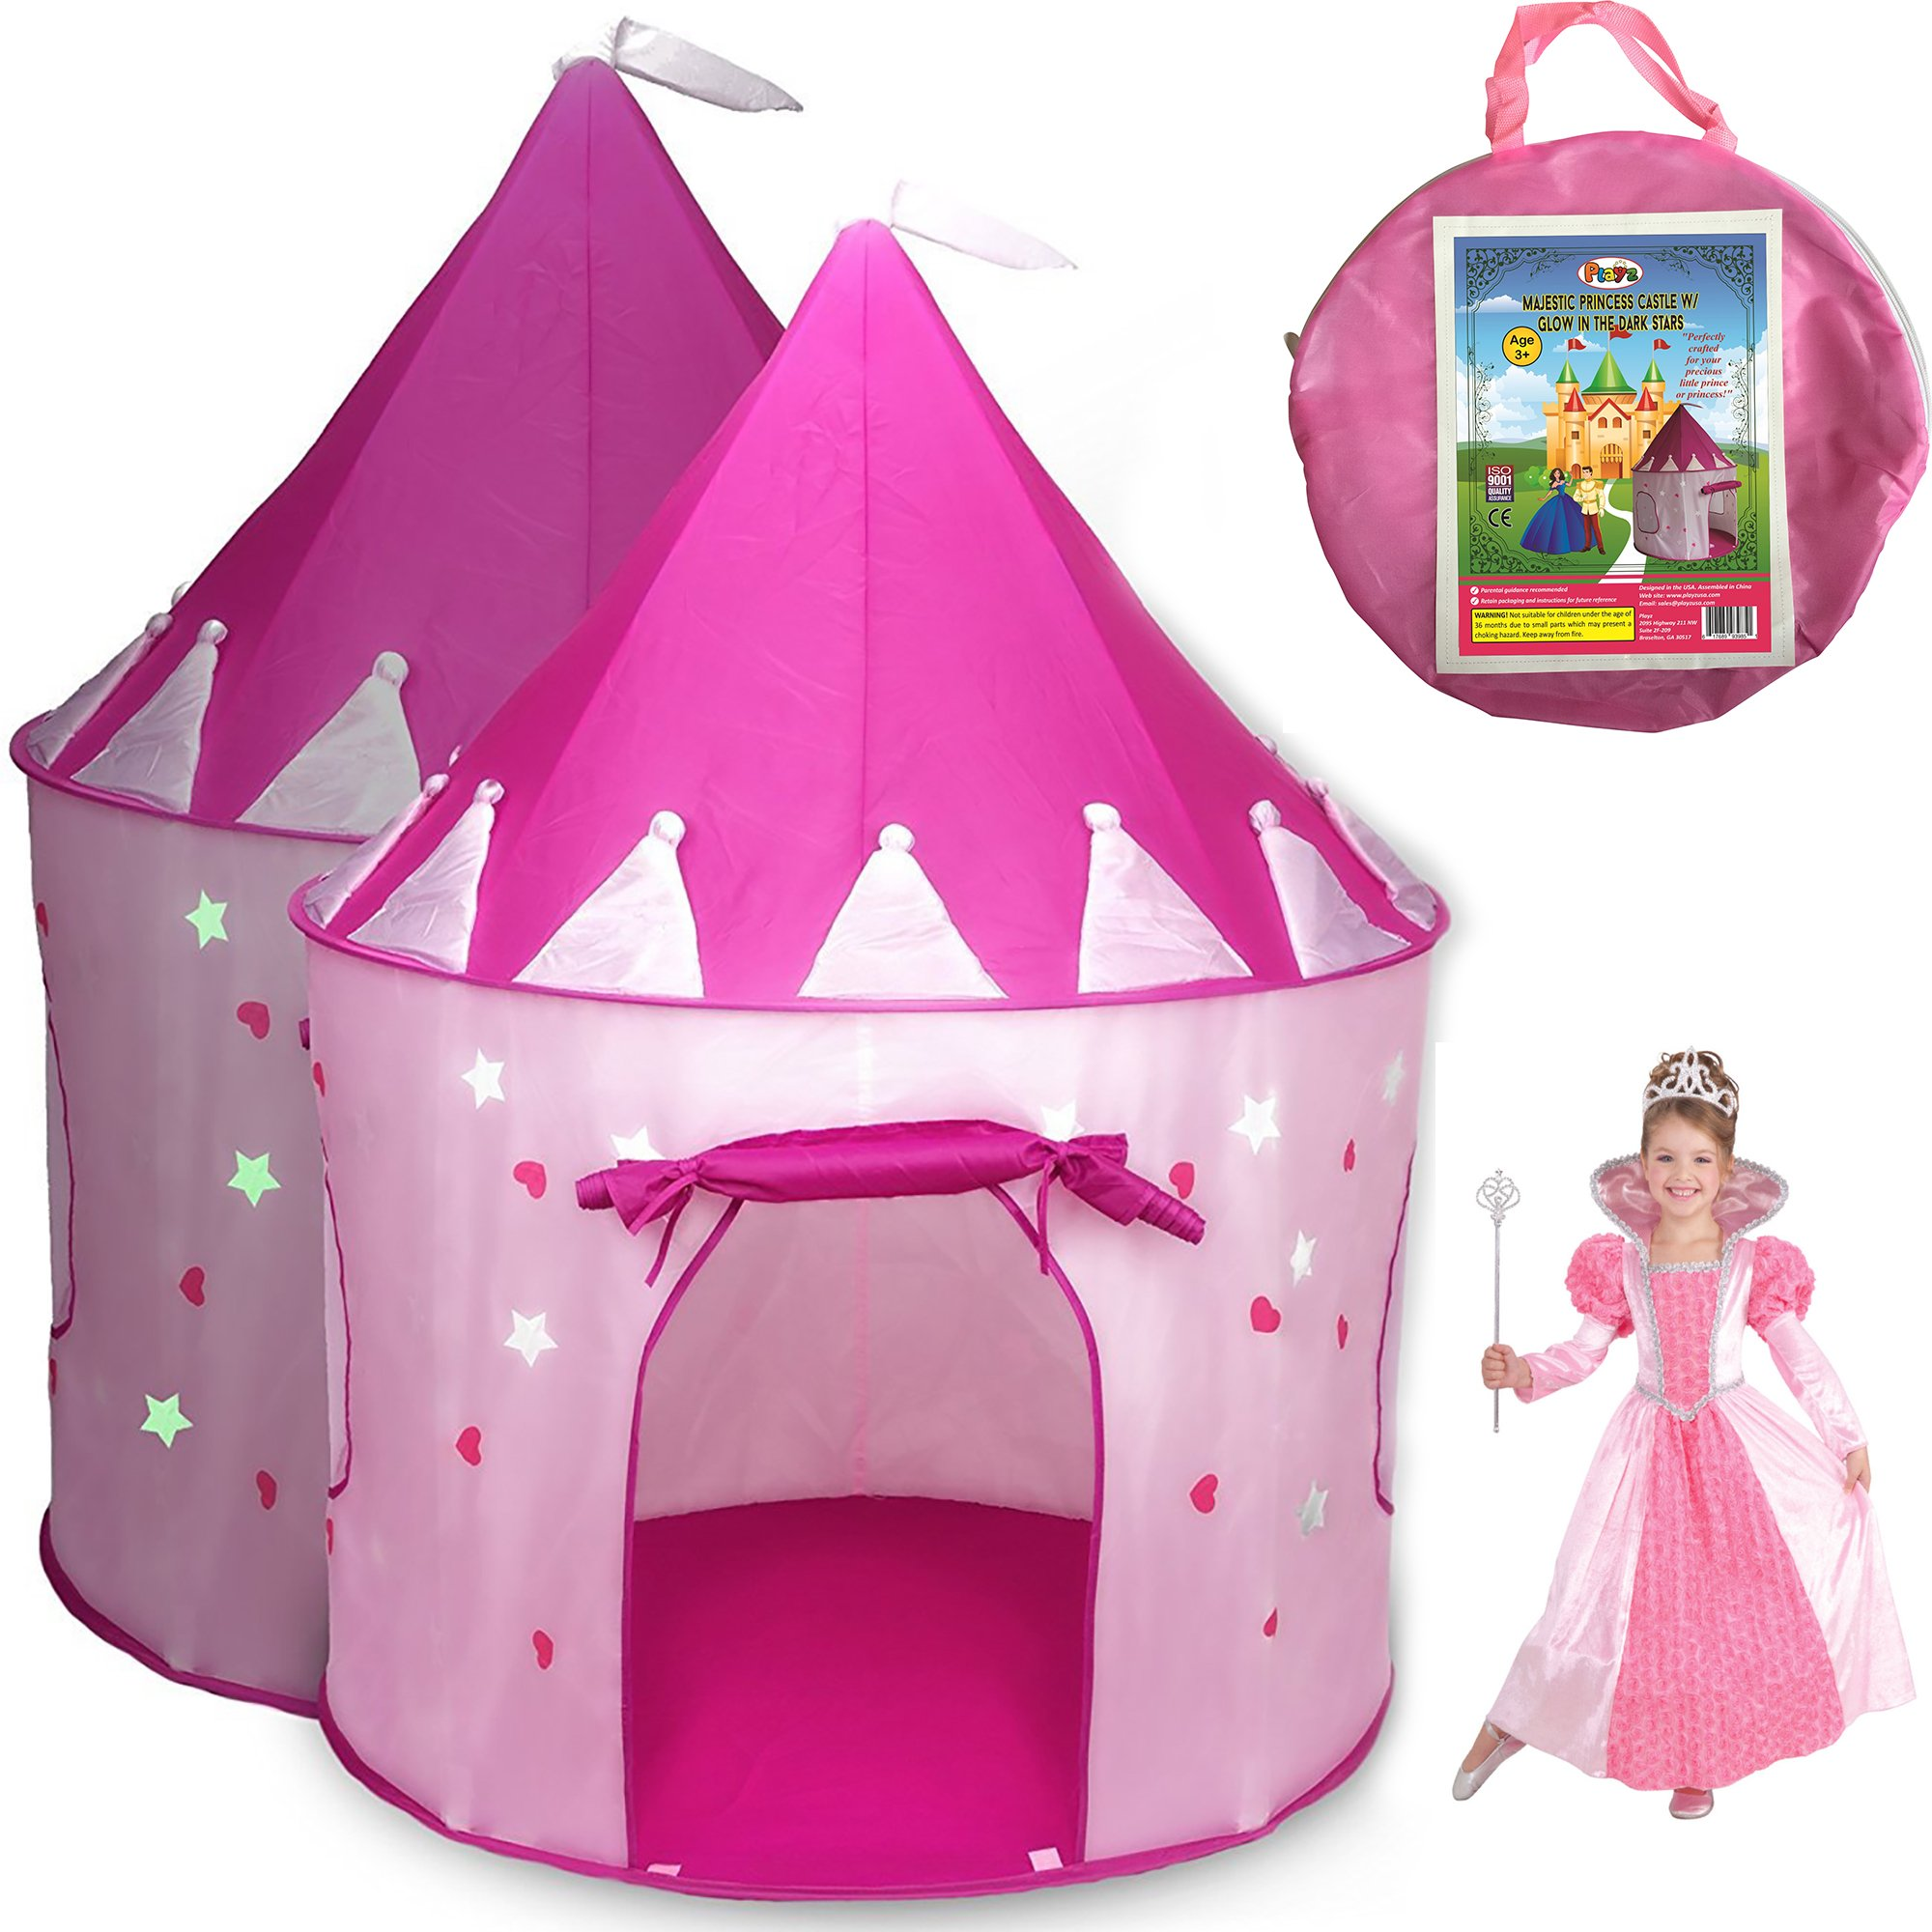 5 Pc Playhouse Fairy Princess Castle Girls Play Tent Glow Butterfly Dress Pink  sc 1 st  eBay & 5 Pc Playhouse Fairy Princess Castle Girls Play Tent Glow ...